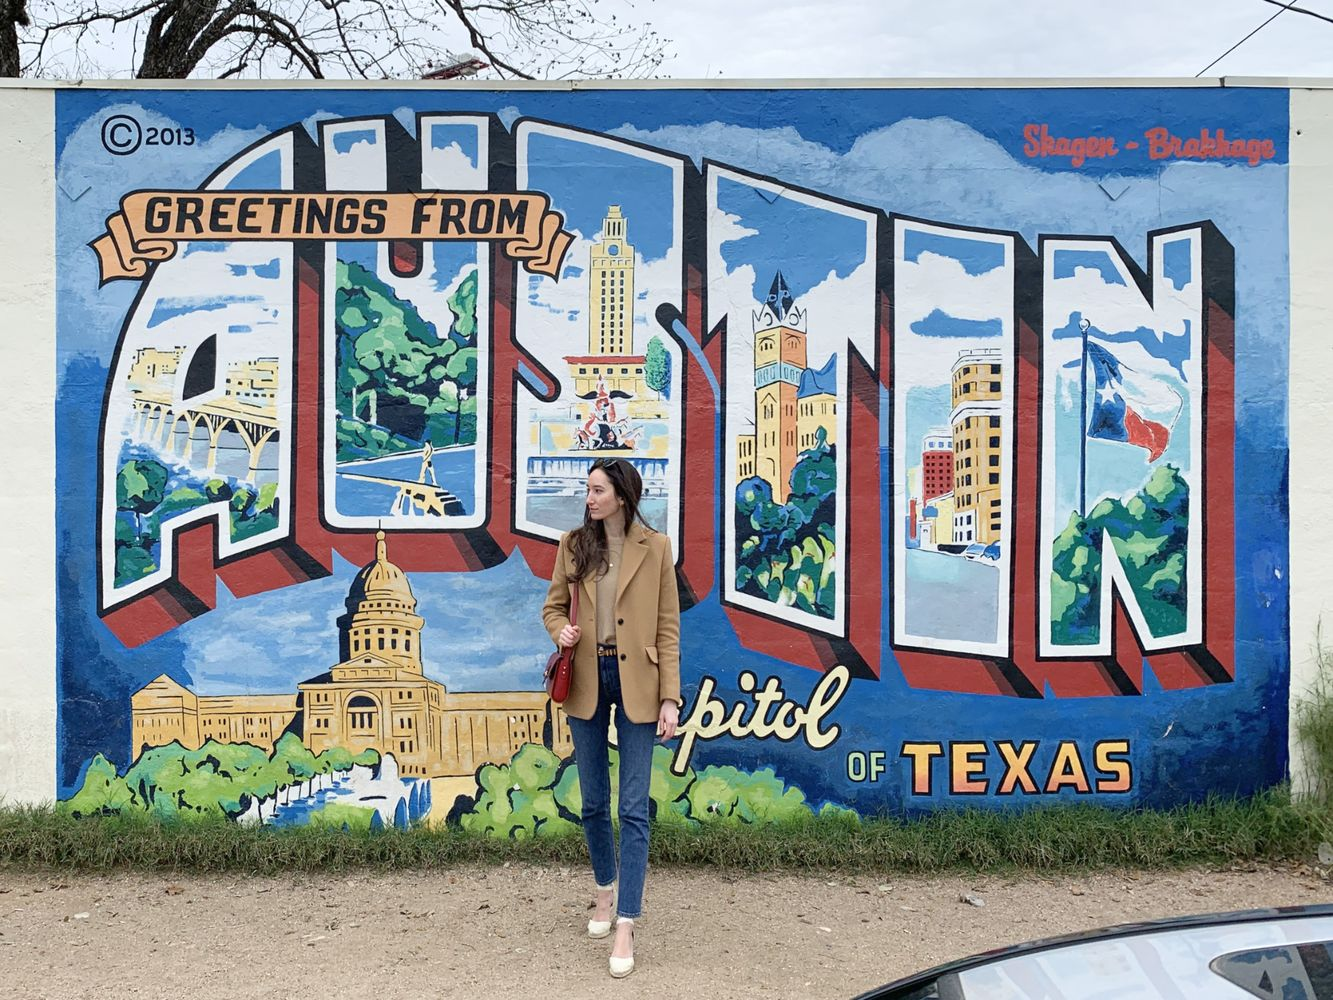 Greetings from Austin Mural in South Congress – Postcard mural in Austin